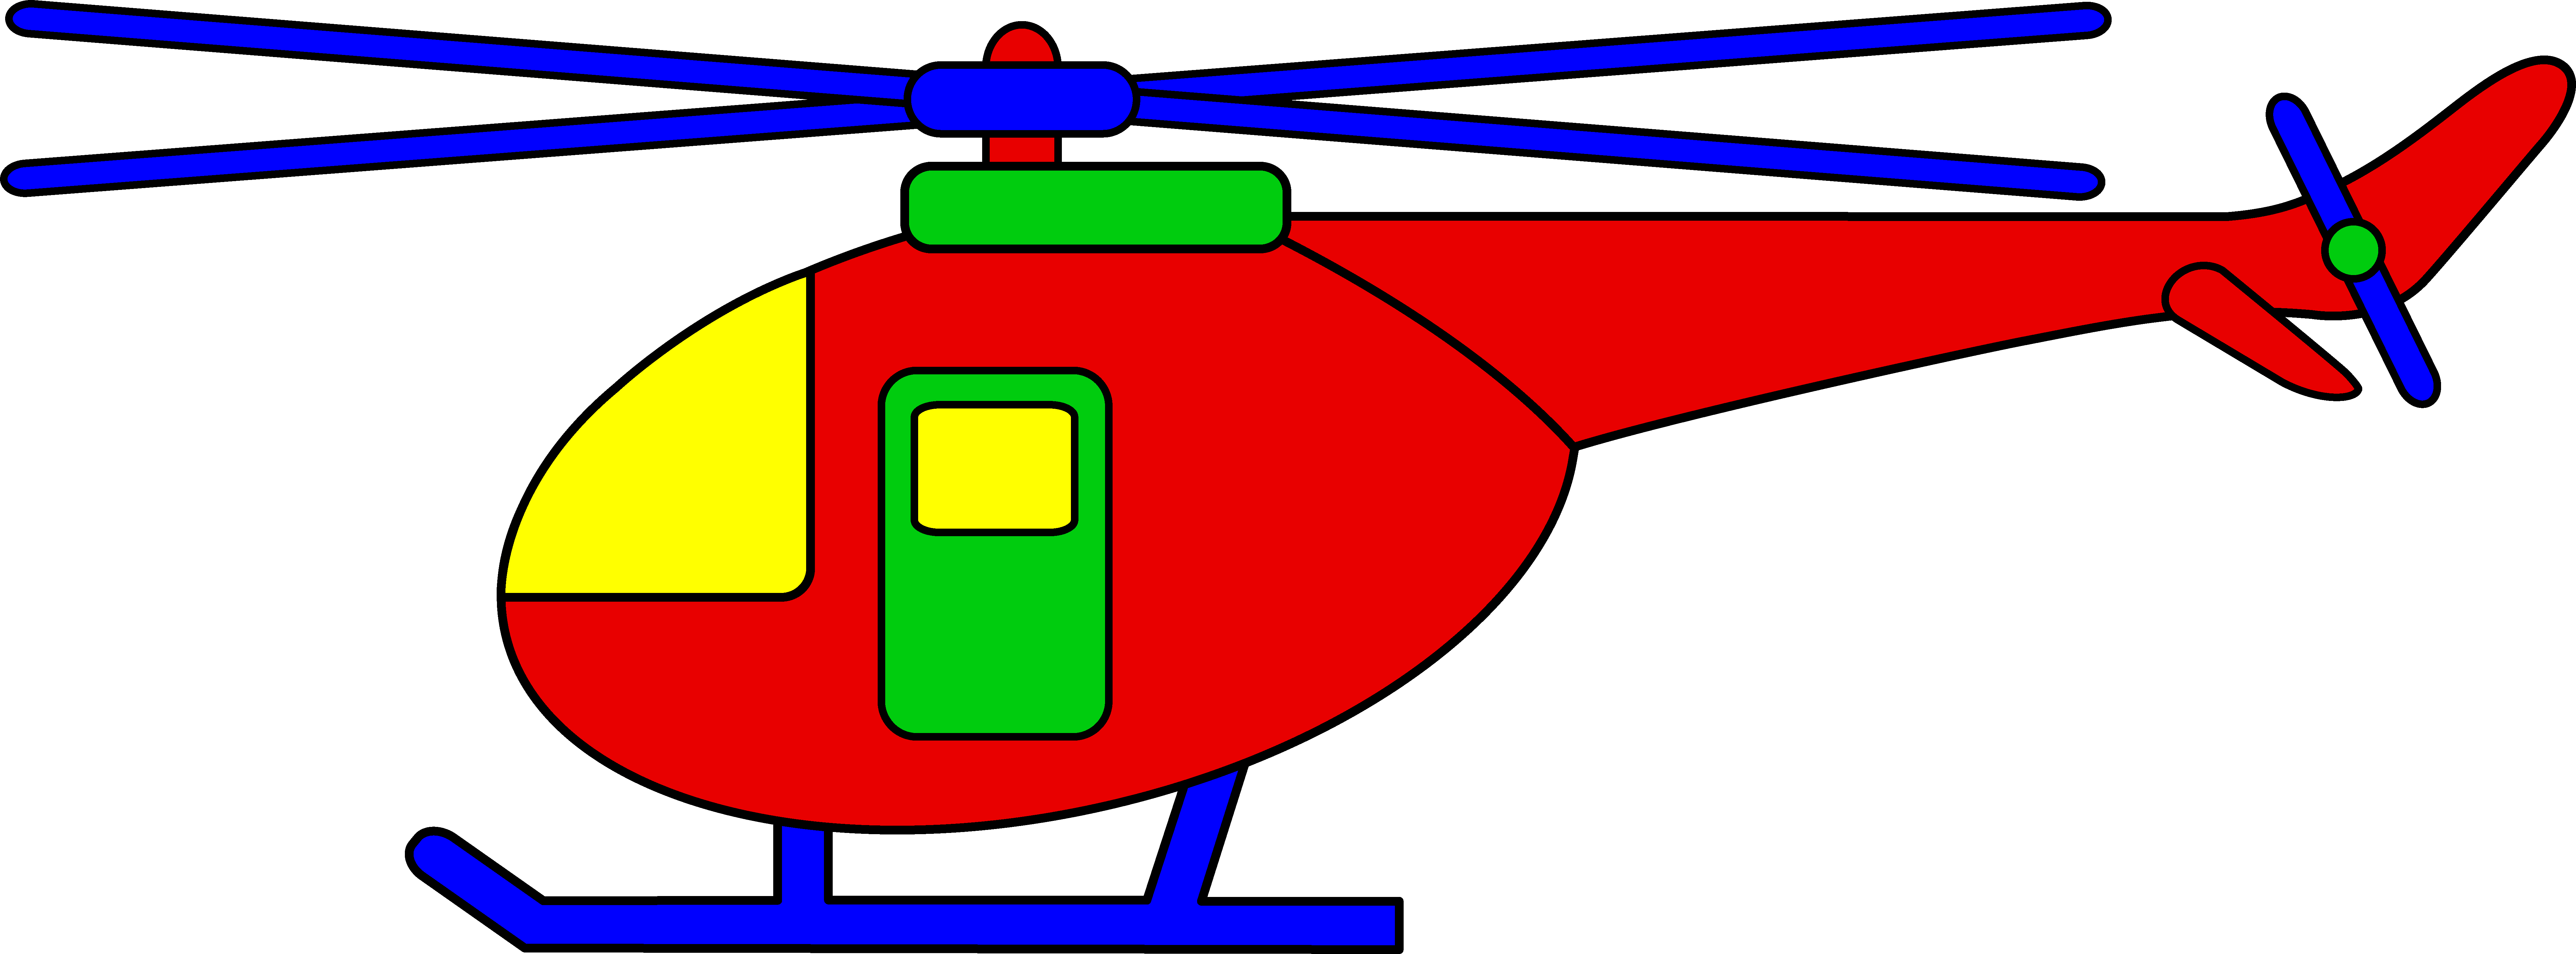 Helicopter clipart. Panda free images